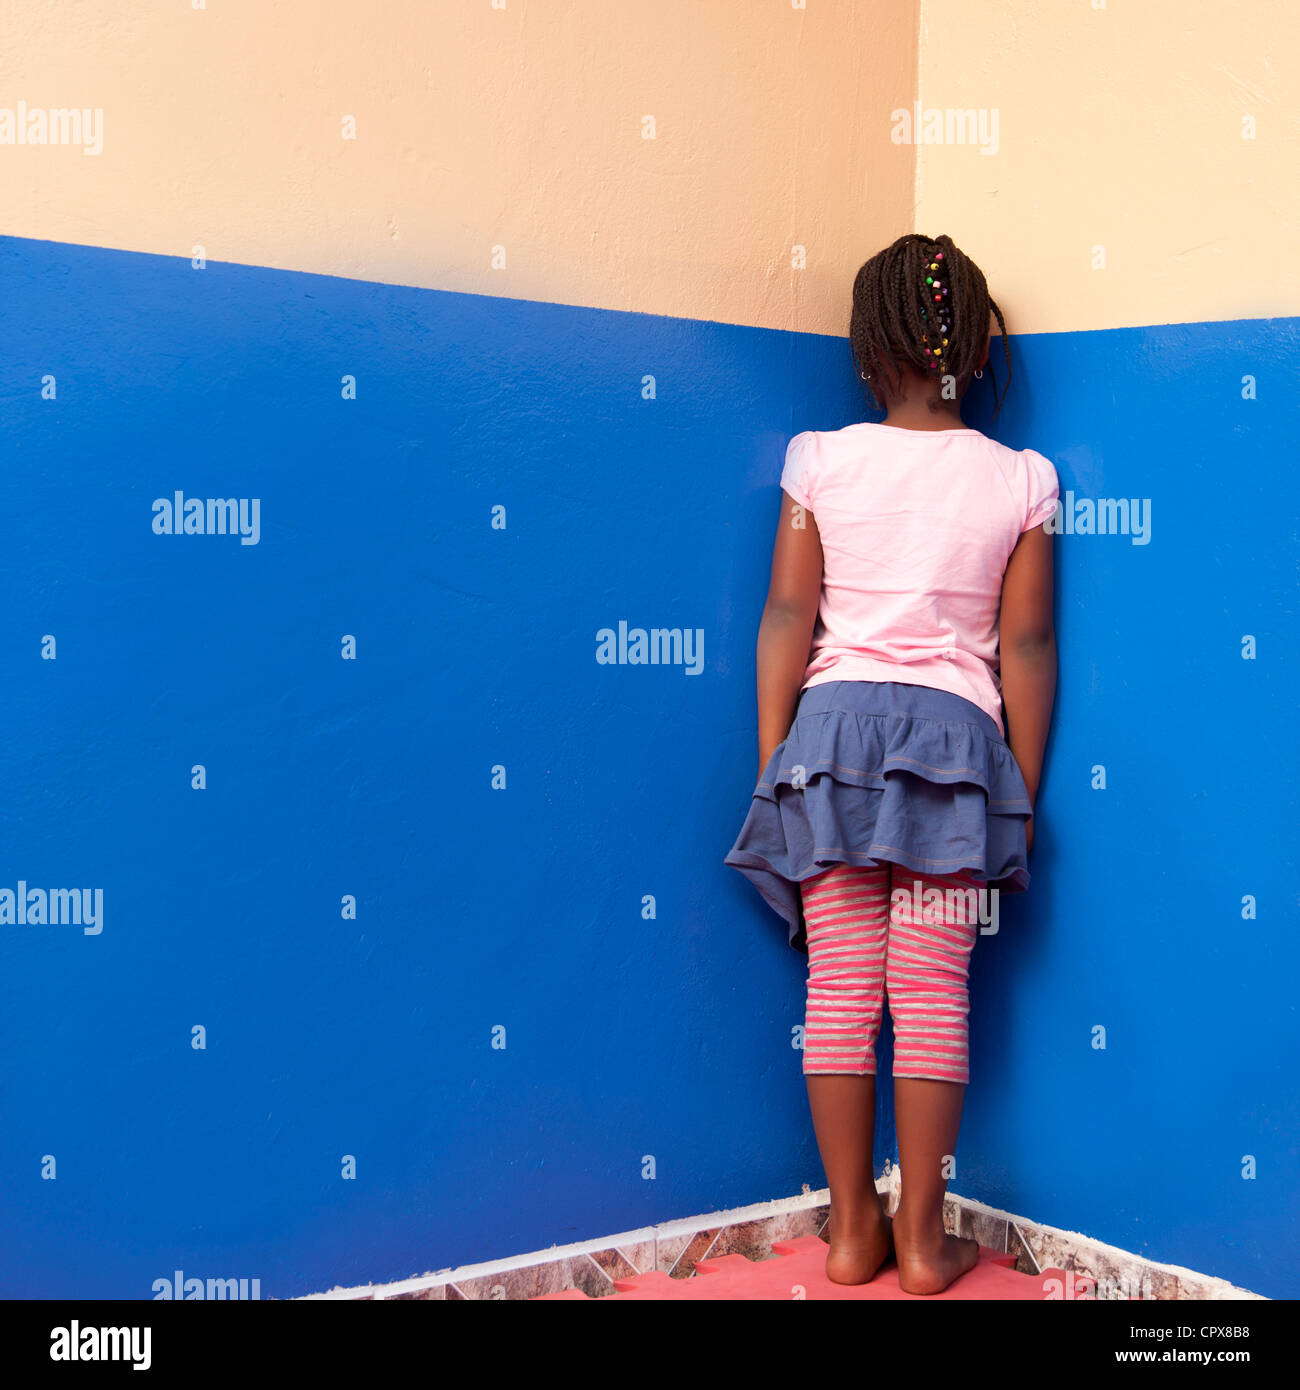 Standing In The Corner : Child standing in the corner facing wall stock photo